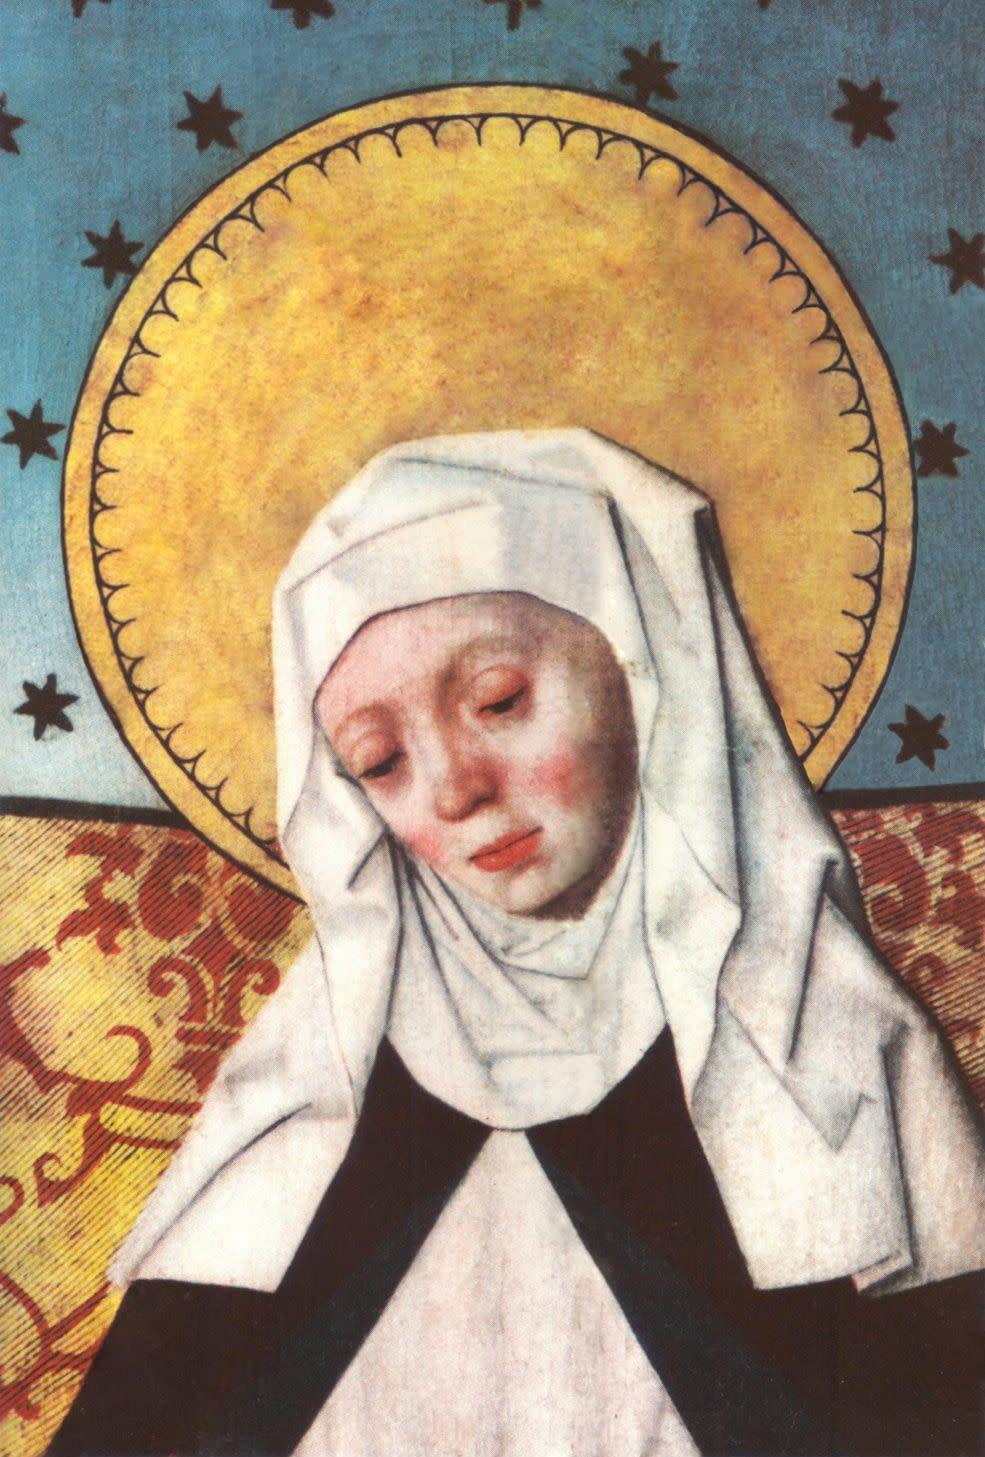 Unlike many of her counterparts, <span>Bridget of Sweden</span>&amp;nbsp;did not devote herself fully to a religious life until her 40s when her husband died in 1344. Reportedly distraught after his death, Bridget spent long hours in prayer beside her husband&amp;rsquo;s grave at the abbey of Alvastra. There she believed God spoke to her, telling her to &amp;ldquo;be my bride and my canal.&amp;rdquo; He gave her the task of founding new religious order, and she went on to start the Brigittines, or the Order of St. Saviour. Both men and women joined the community, with separate cloisters. They lived in poor convents and were instructed to give all surplus income to the poor. In 1350, Bridget braved the plague, which was ravaging Europe, to pilgrimage to Rome in order to obtain authorization for her new order from the pope. It would be 20 years before she received this authorization, but Bridget quickly became known throughout Europe for her piety. She was canonized in 1391, less than 20 years after her death.